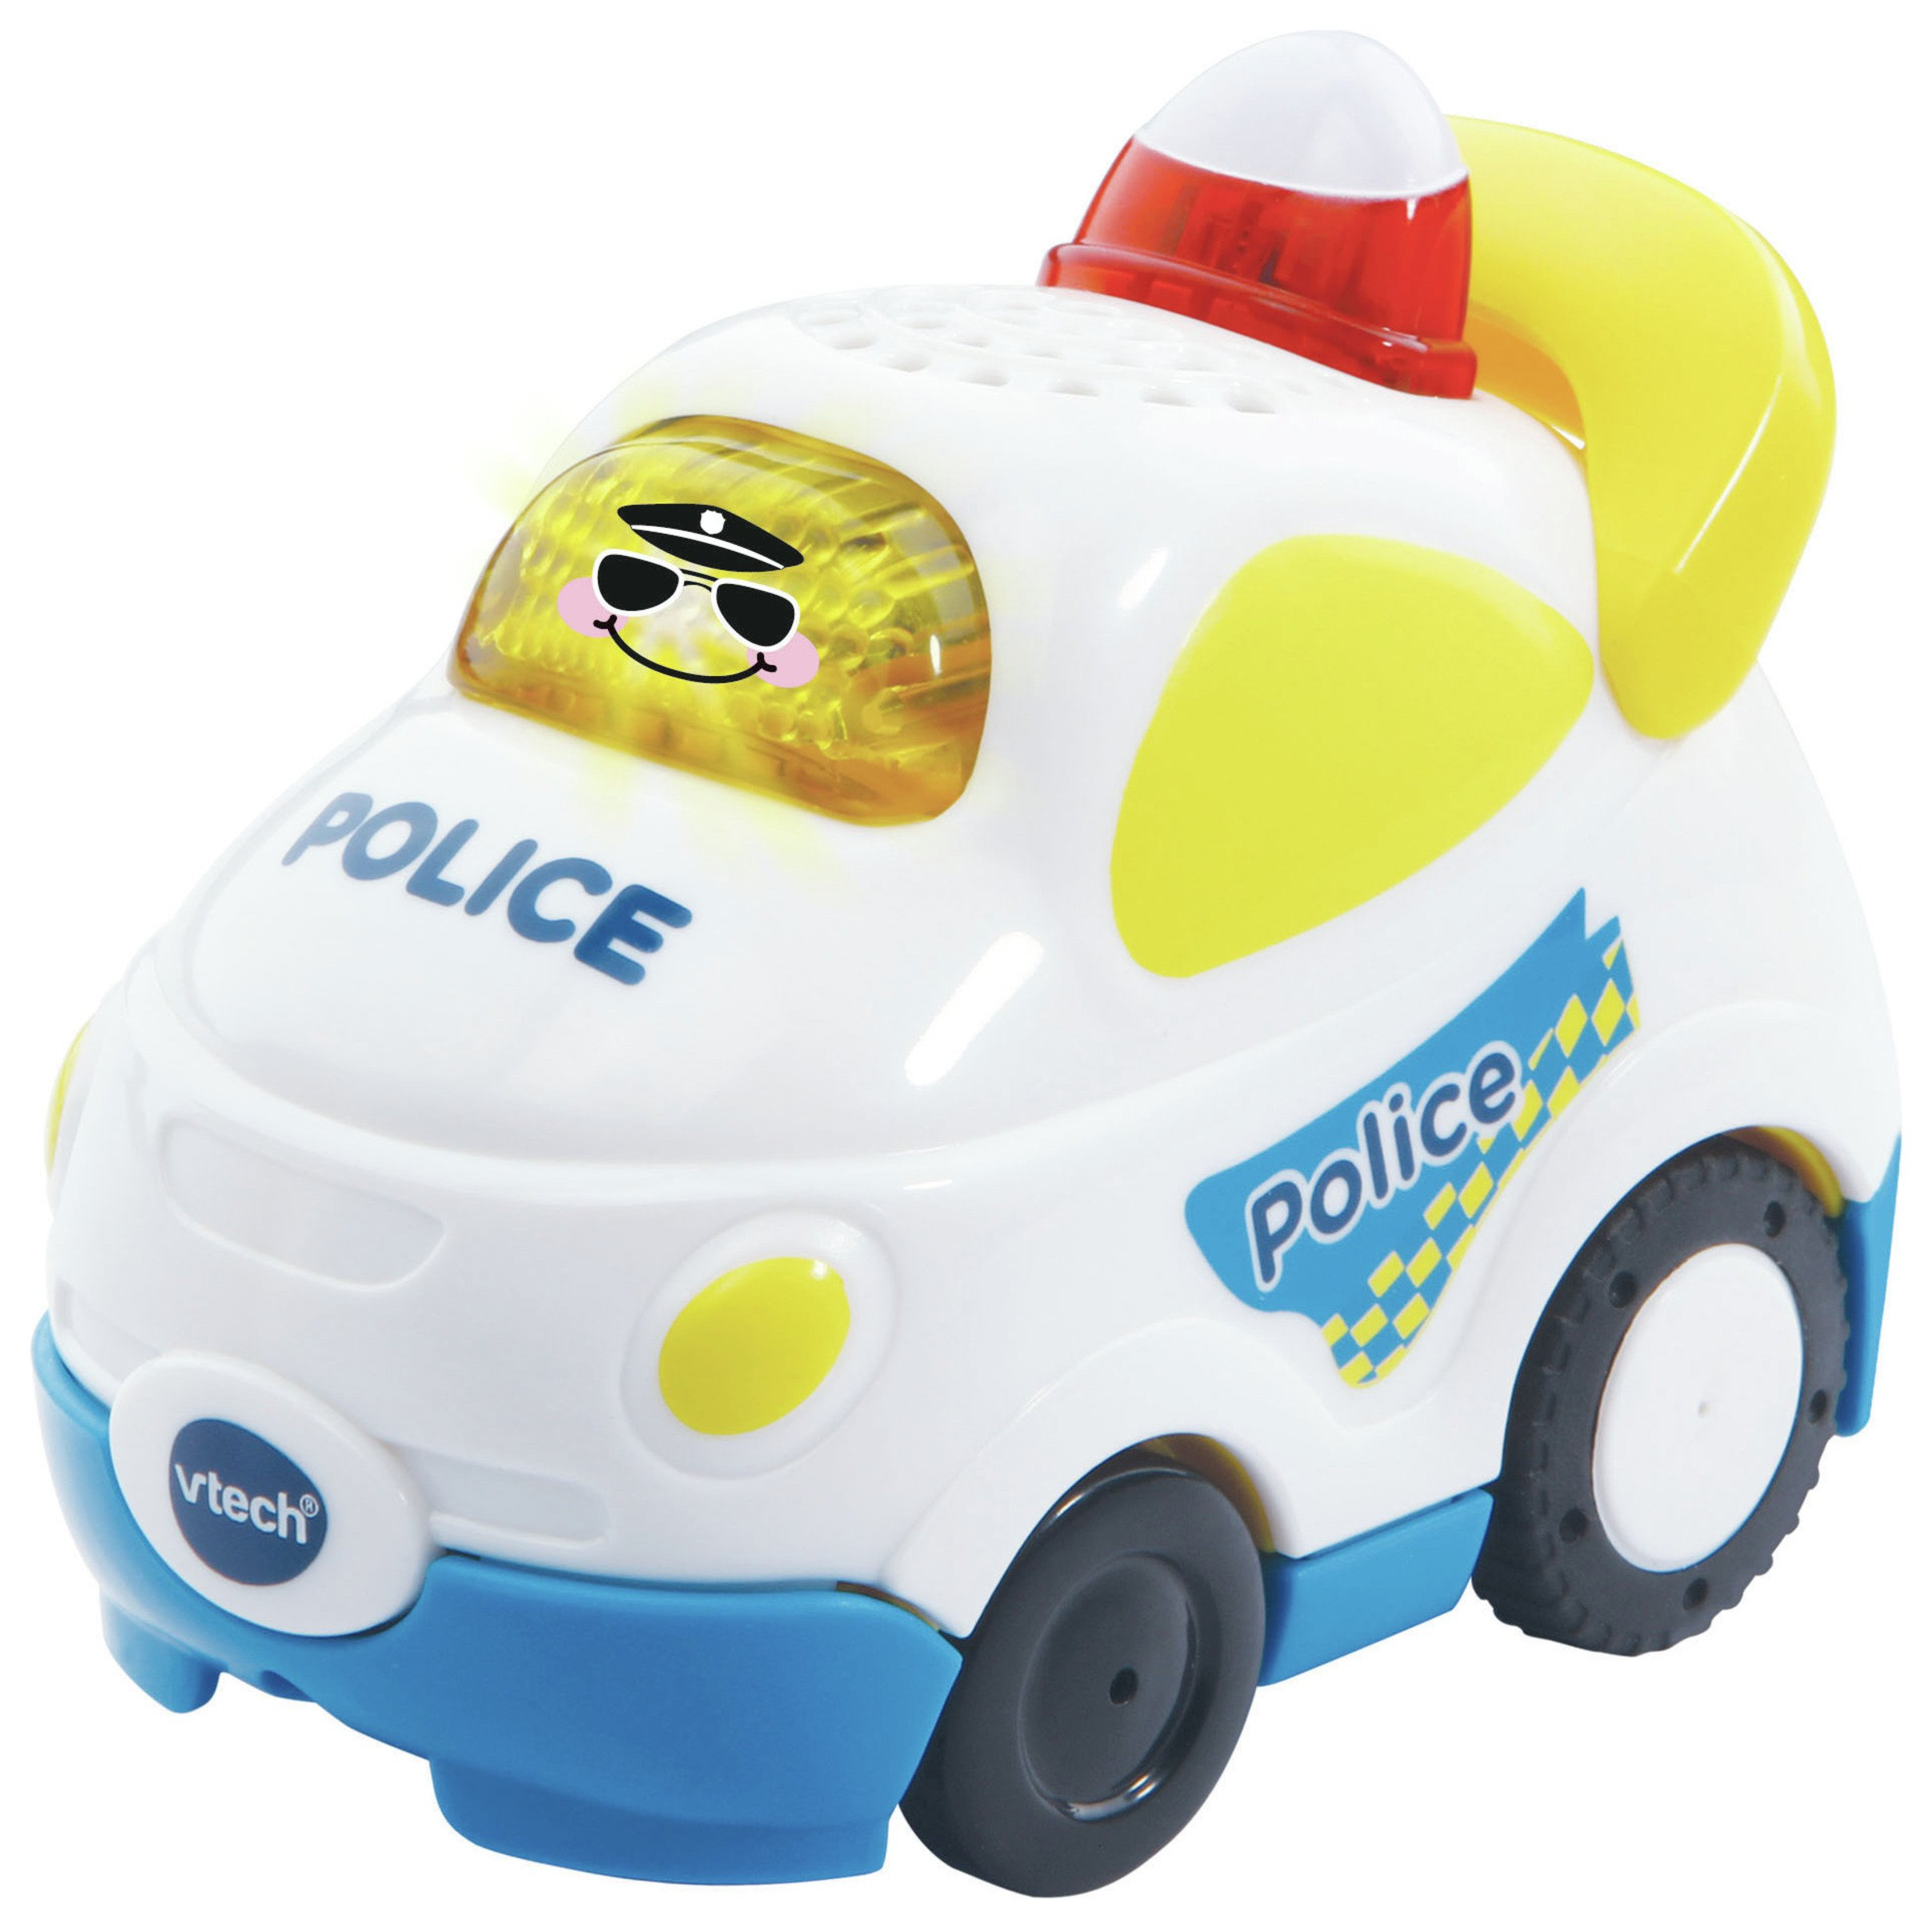 Shop at Ireland's biggest range of kids toys. Smyths Toys is the leading provider of kids toys and entertainment with over 70 stores throughout the UK and Ireland.